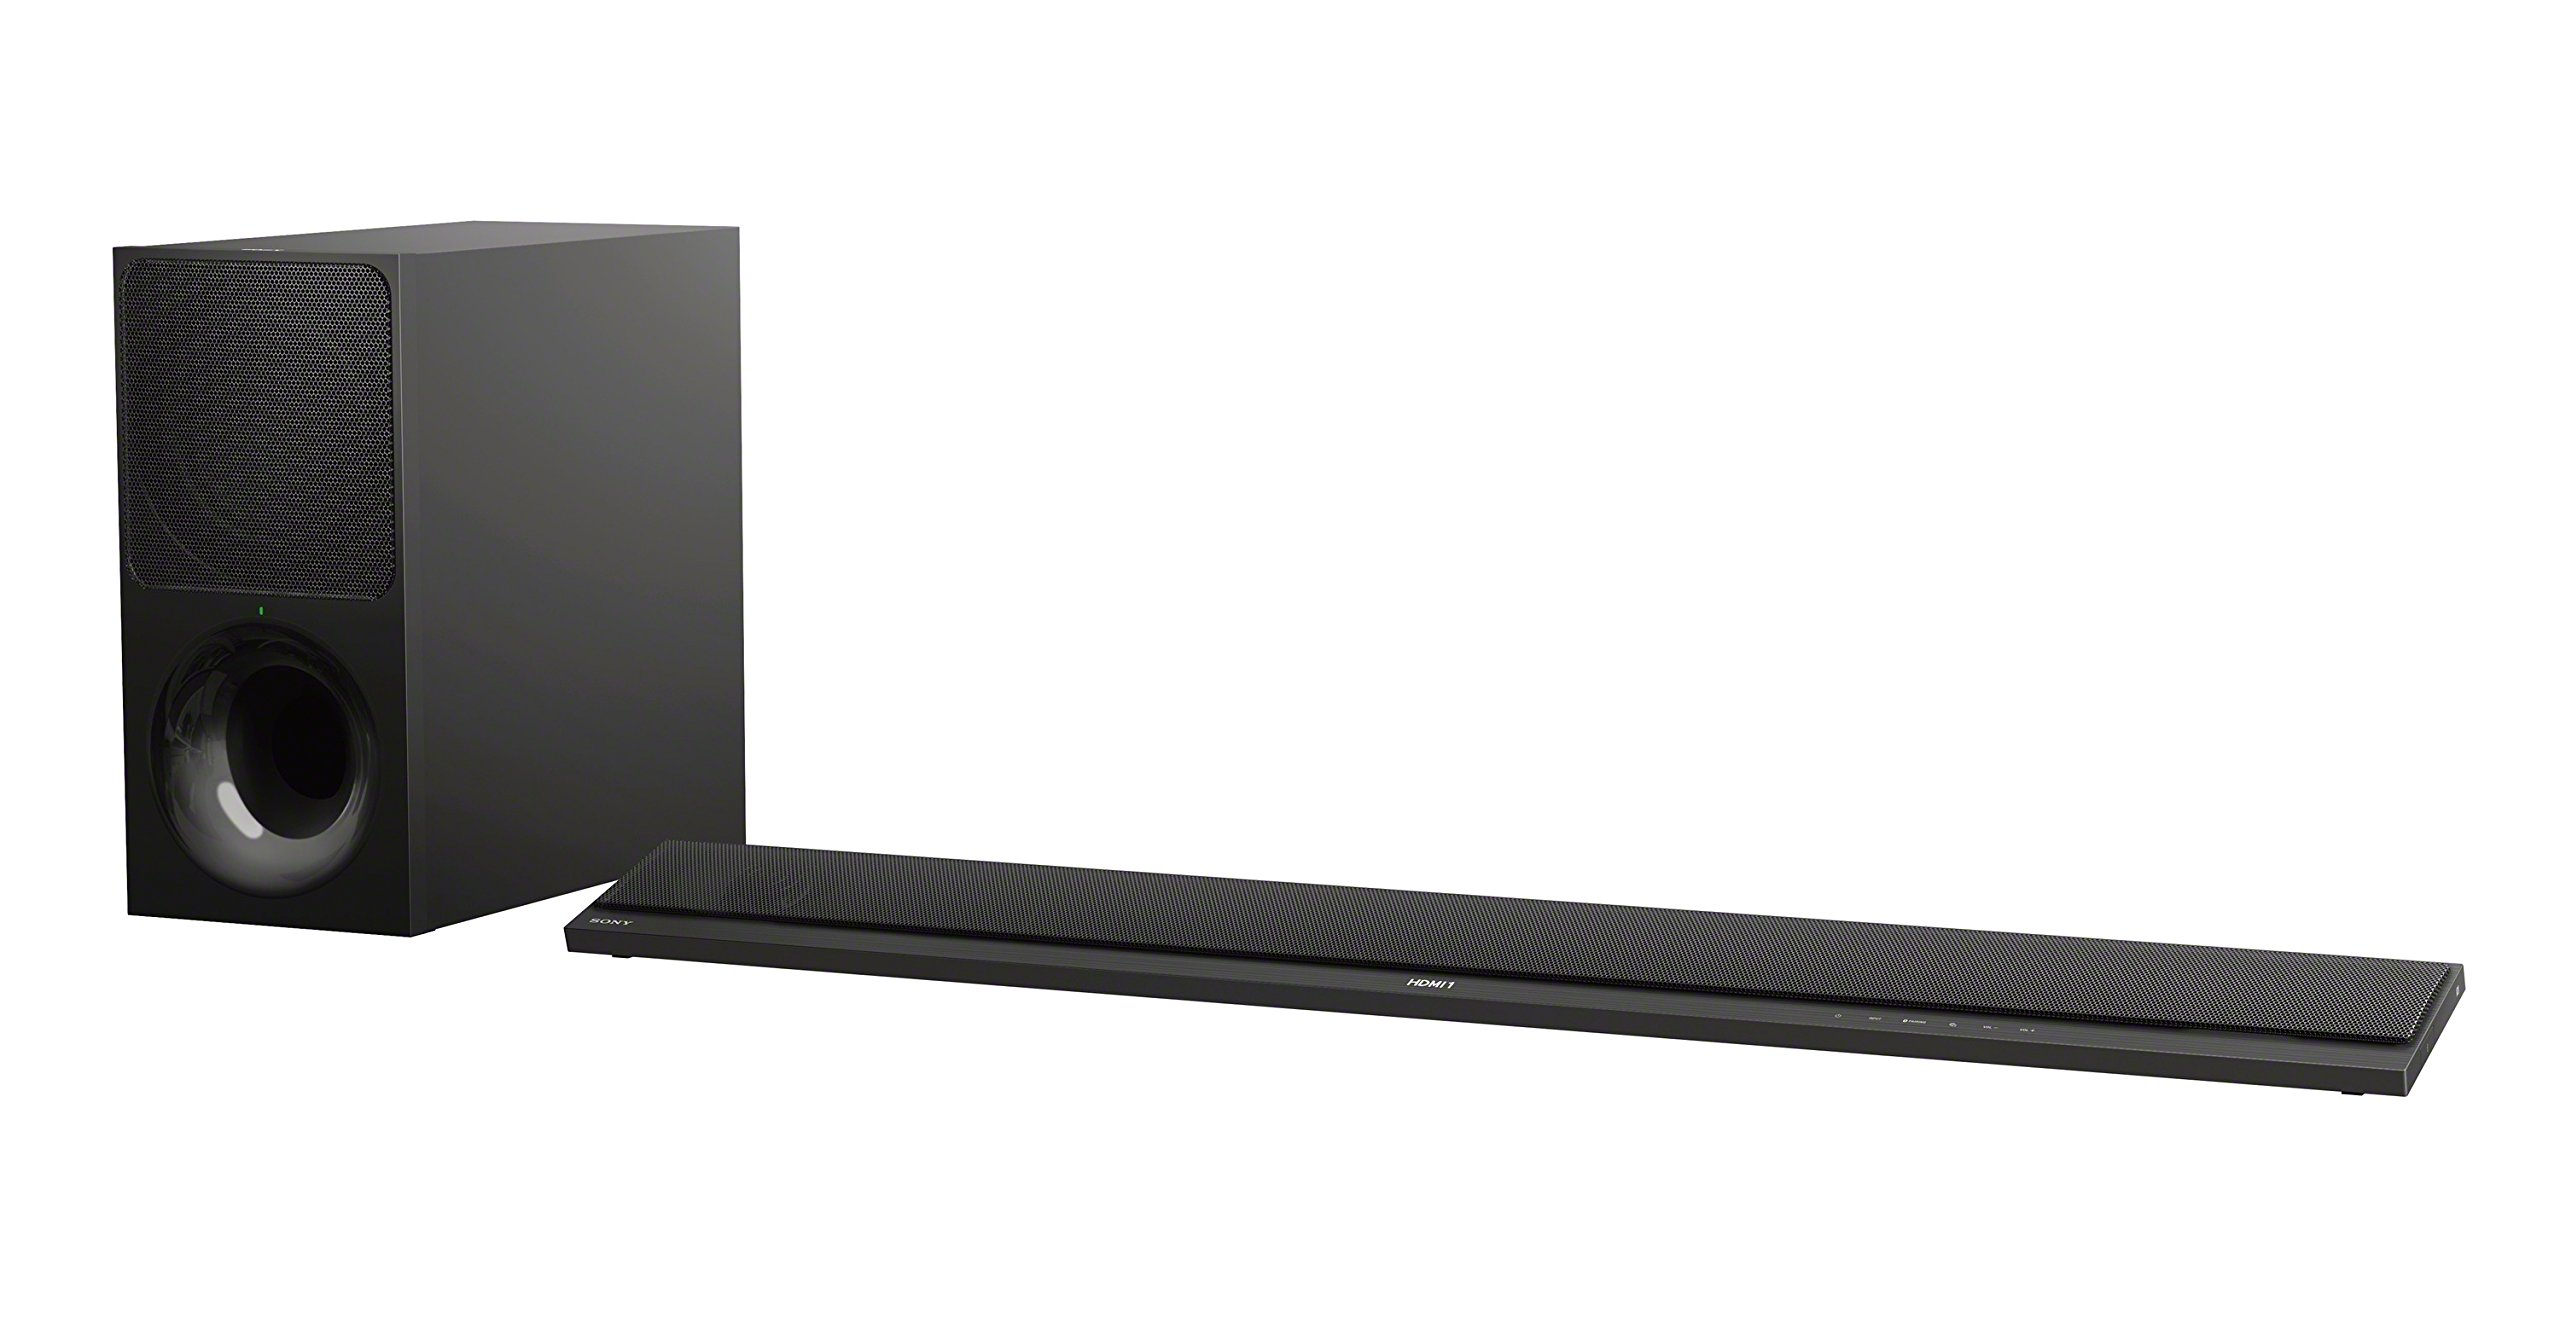 Sony CT800 Powerful sound bar with 4K HDR and Google Home Support (2017 model) by Sony